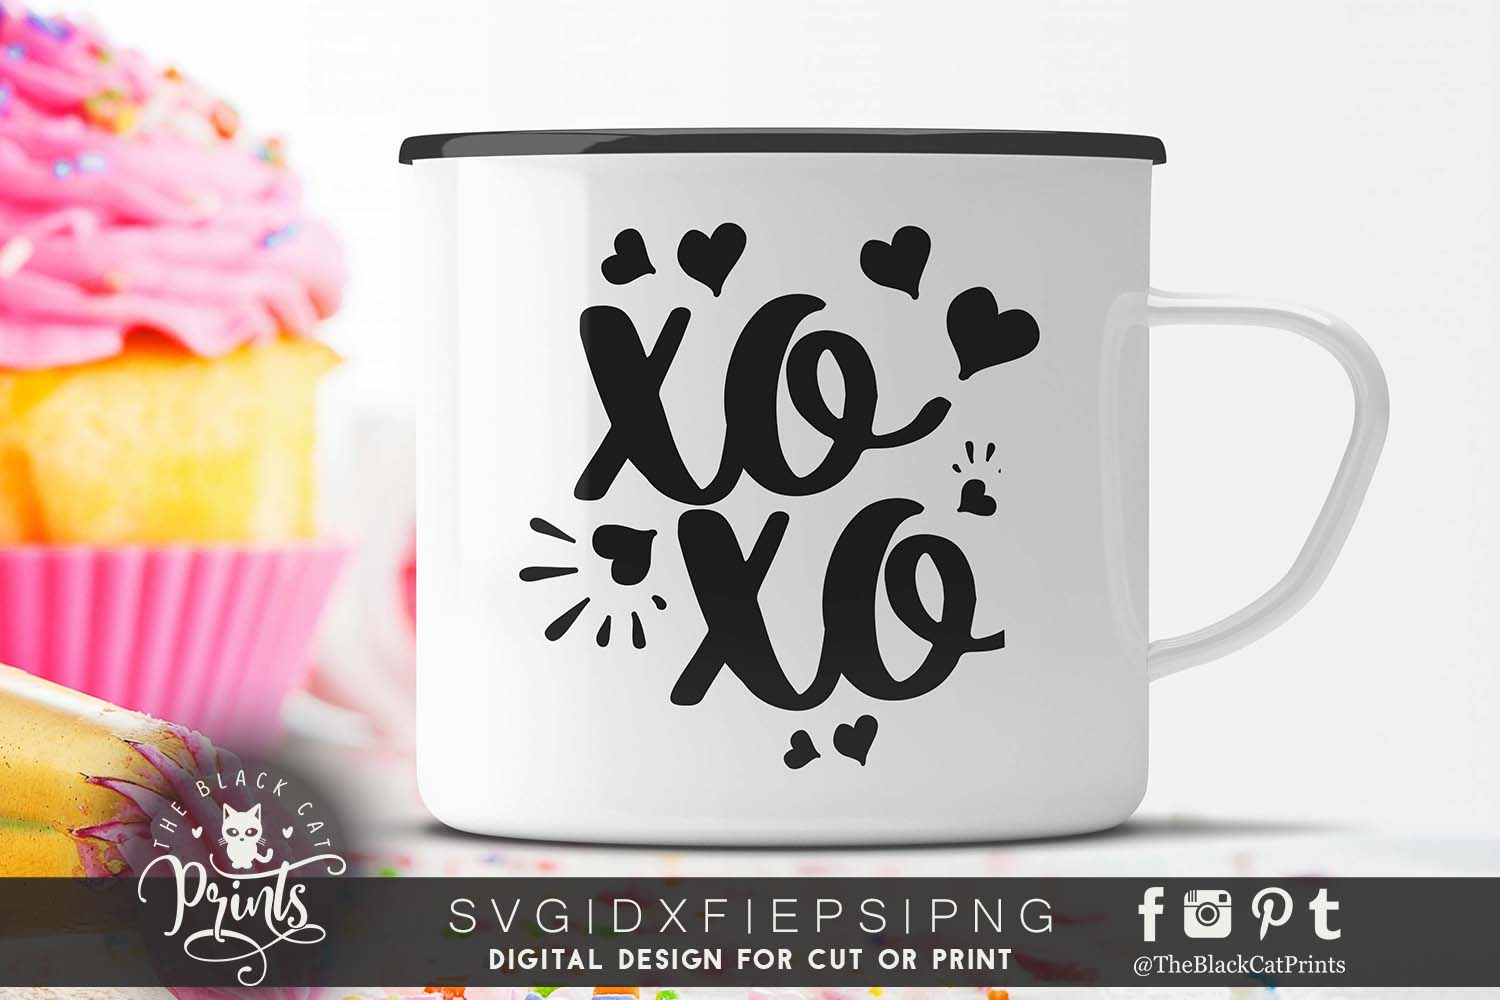 XOXO - Hugs and kisses SVG PNG EPS DXF example image 4